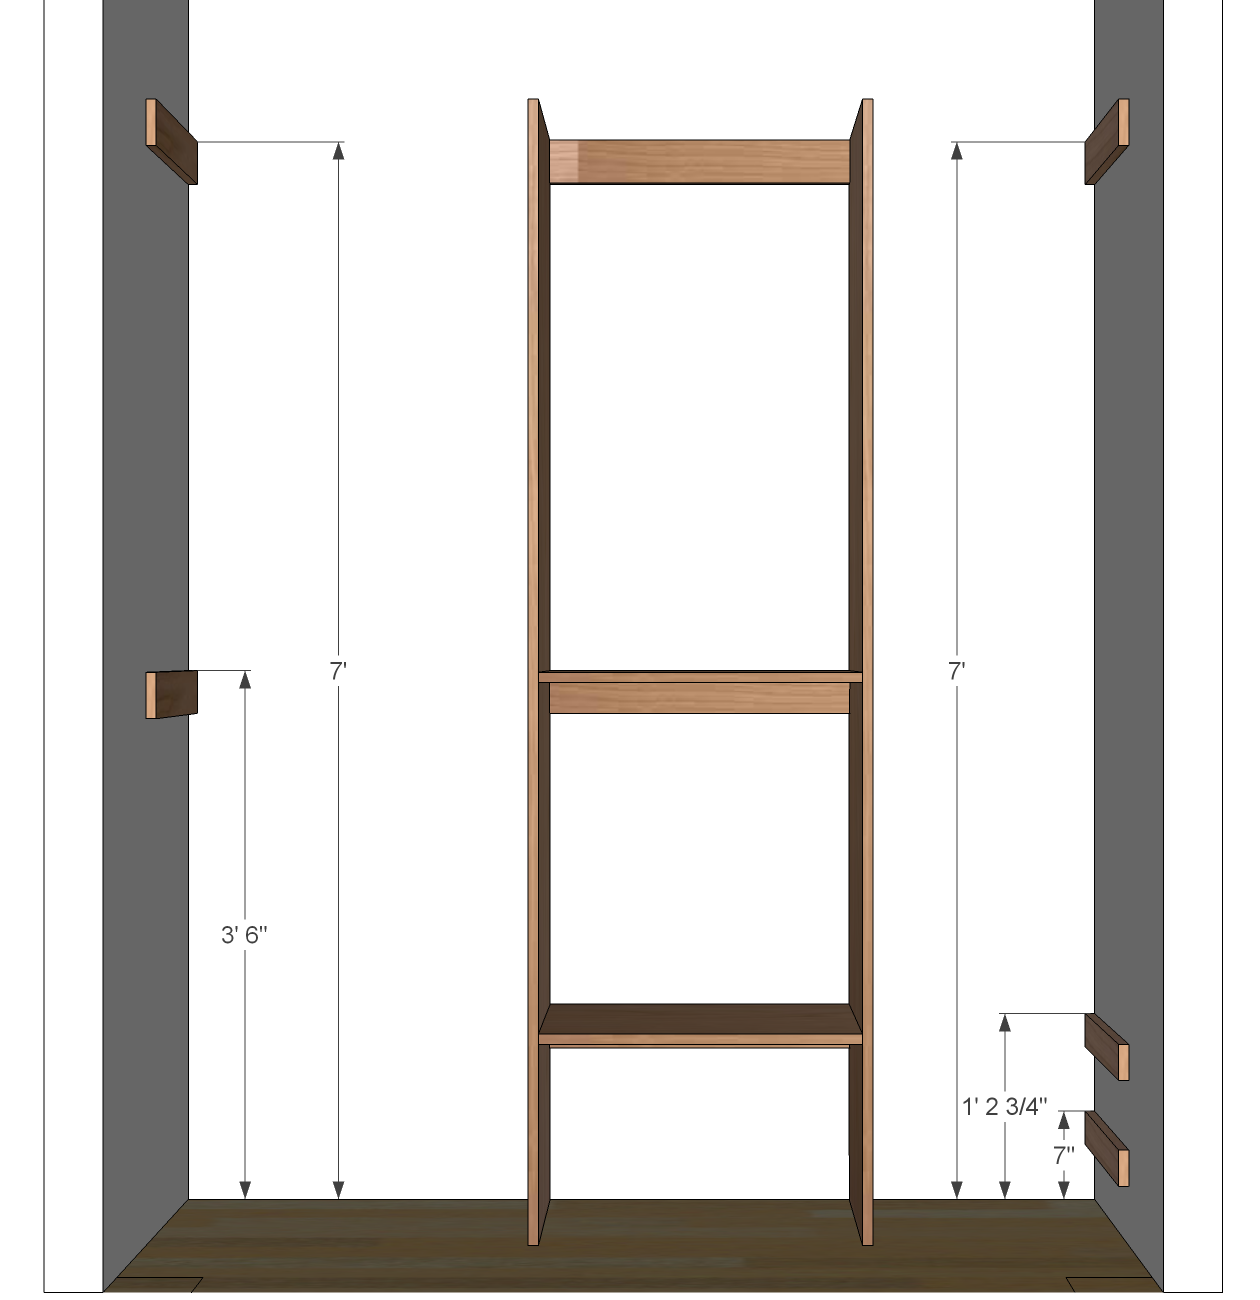 Diy closet organizer plans for 5 39 to 8 39 closet for How to build a walk in closet step by step